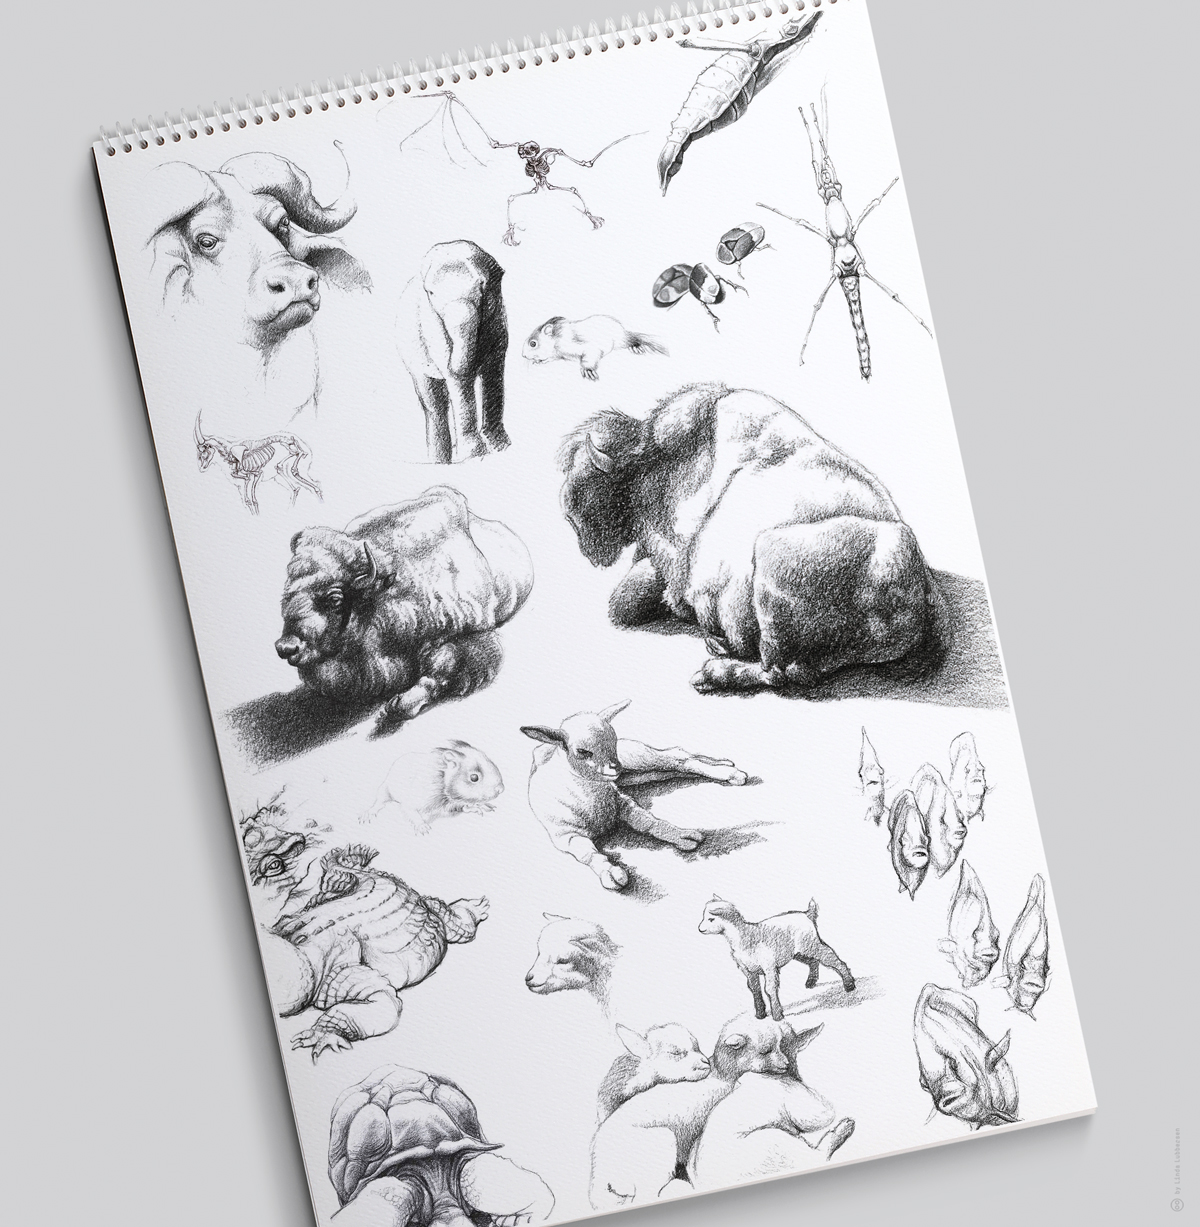 Zoological_studies_2